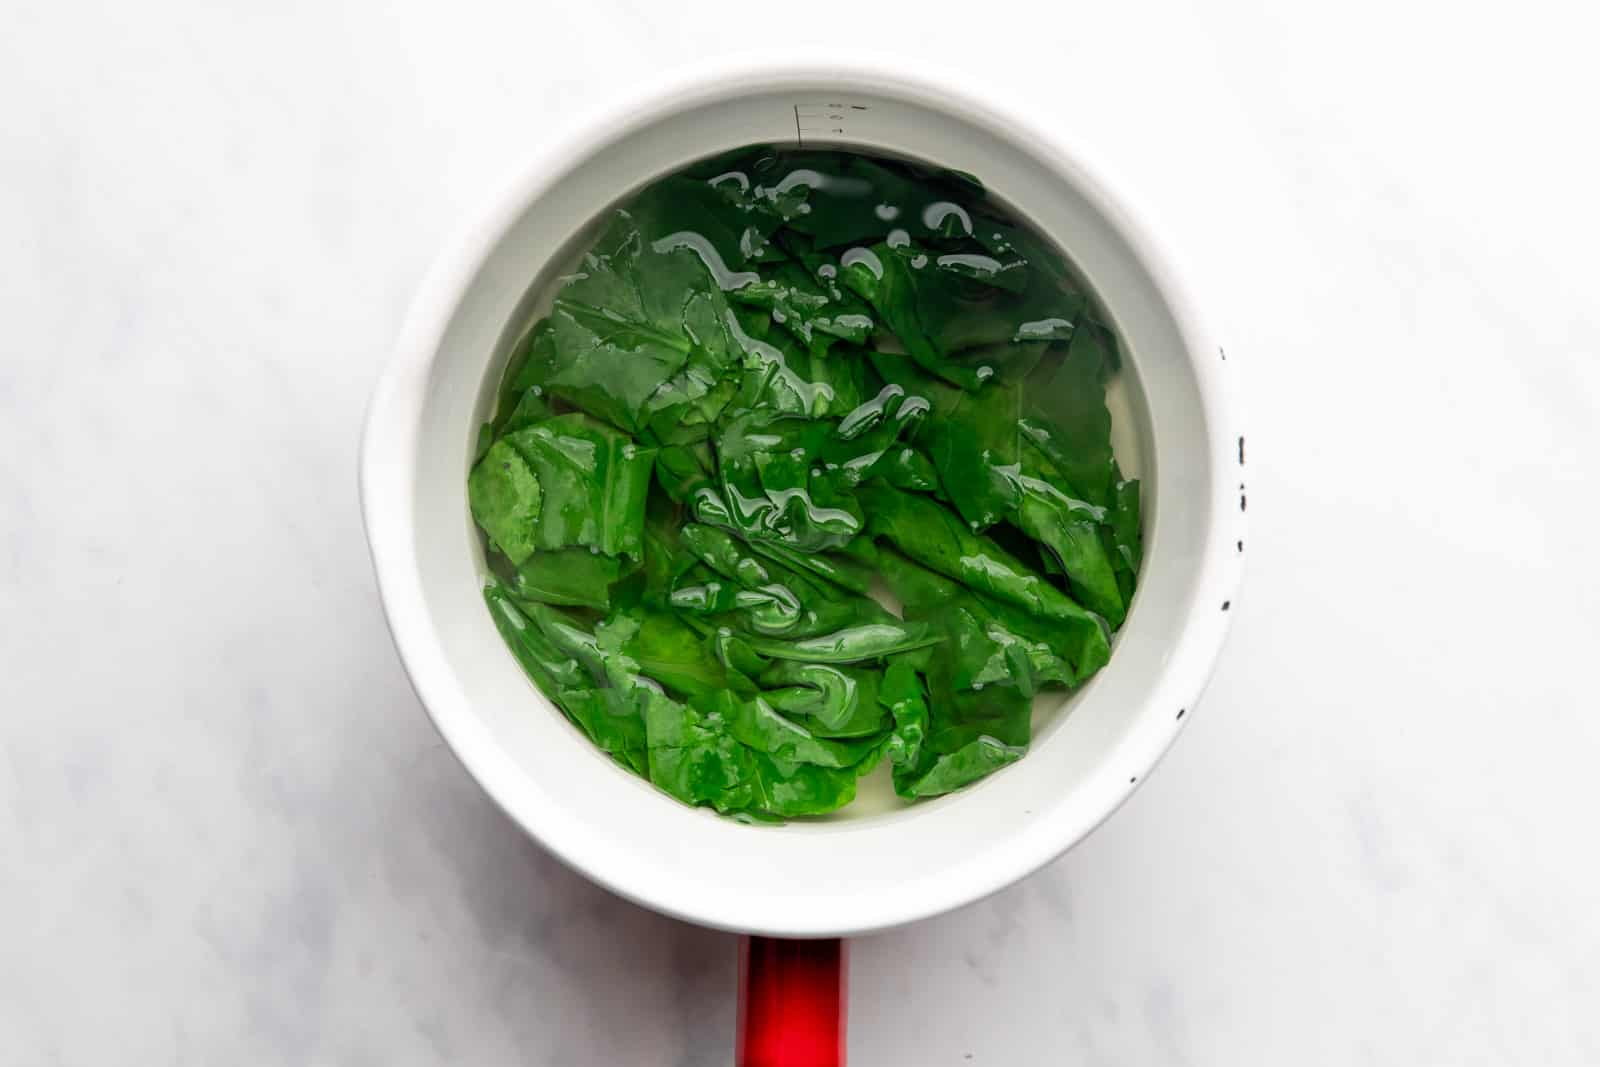 Spinach blanched in hot water in a saucepan